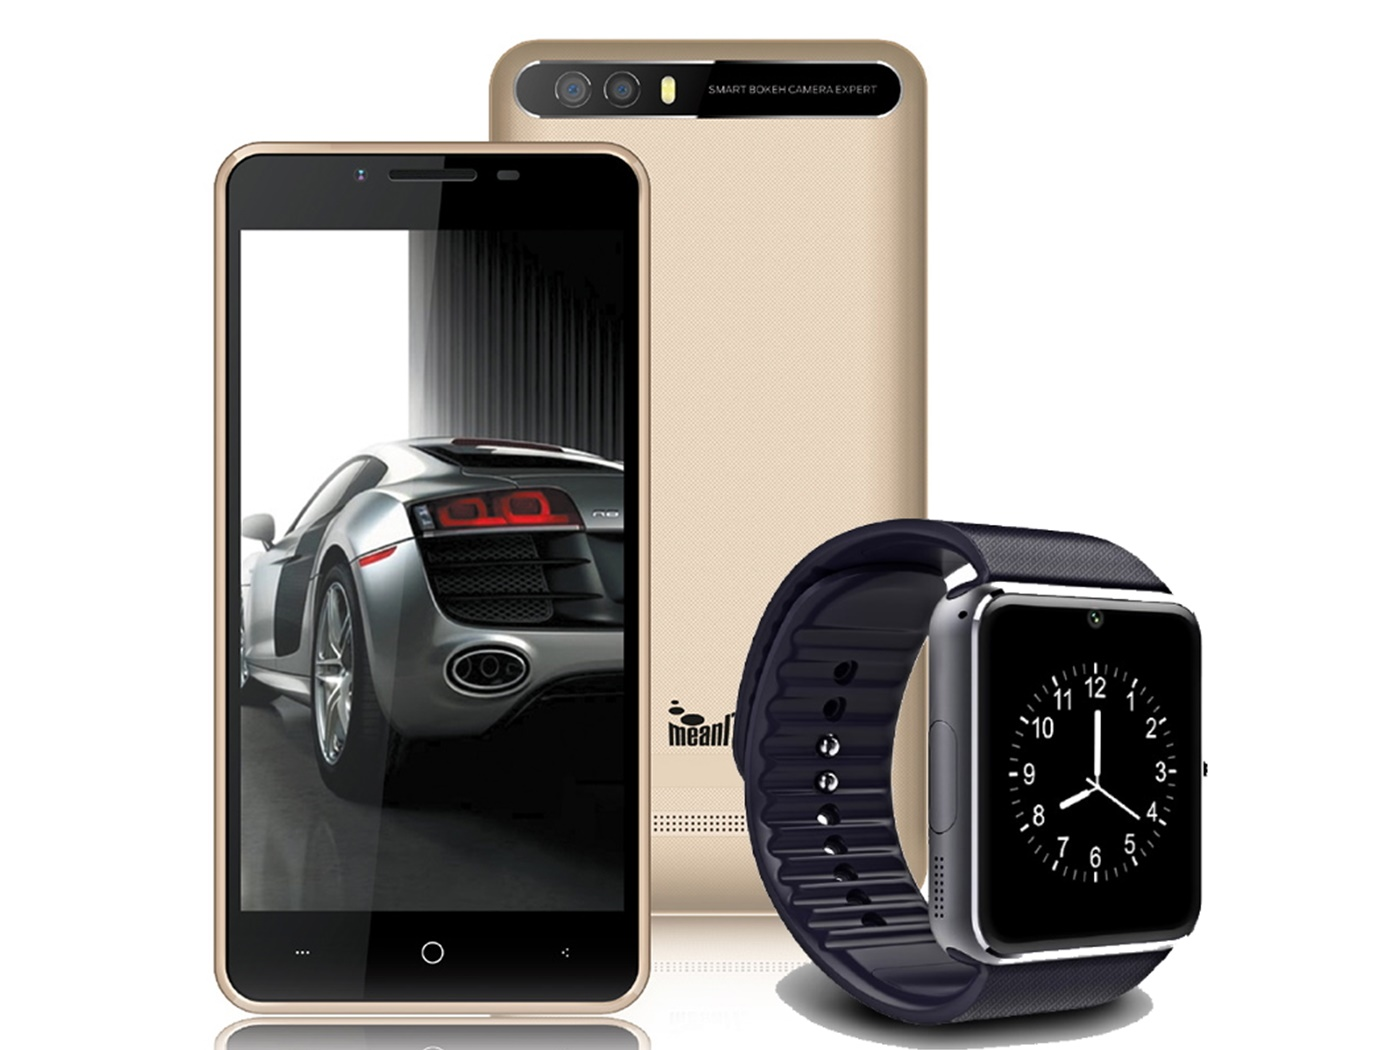 MeanIT smartphone C41 + smartwatch M3